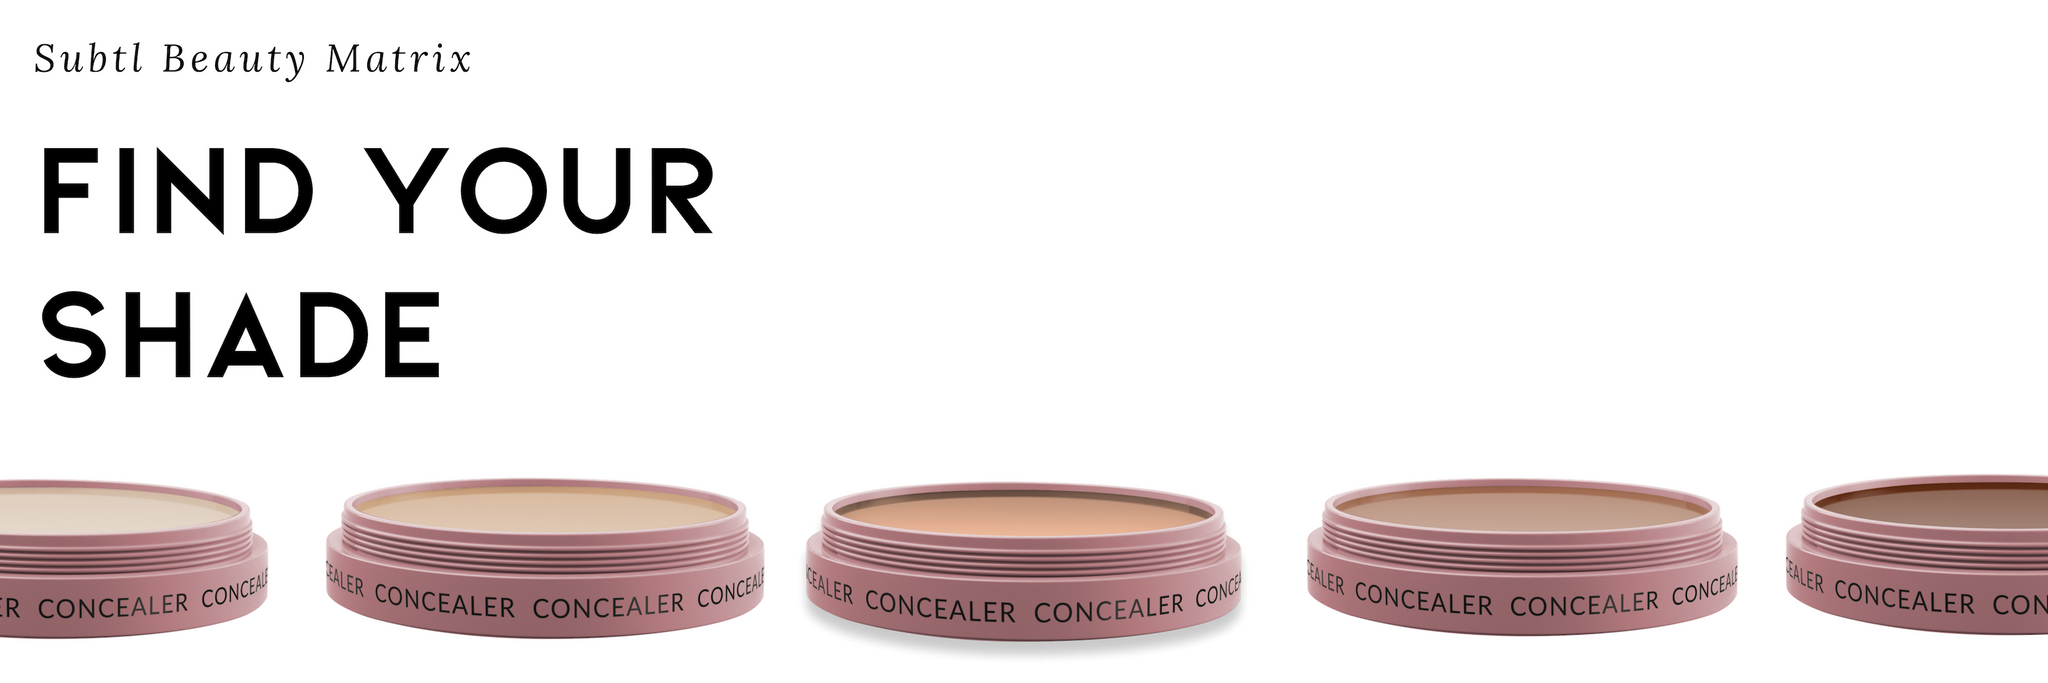 Find your concealer shade by using our shade chart